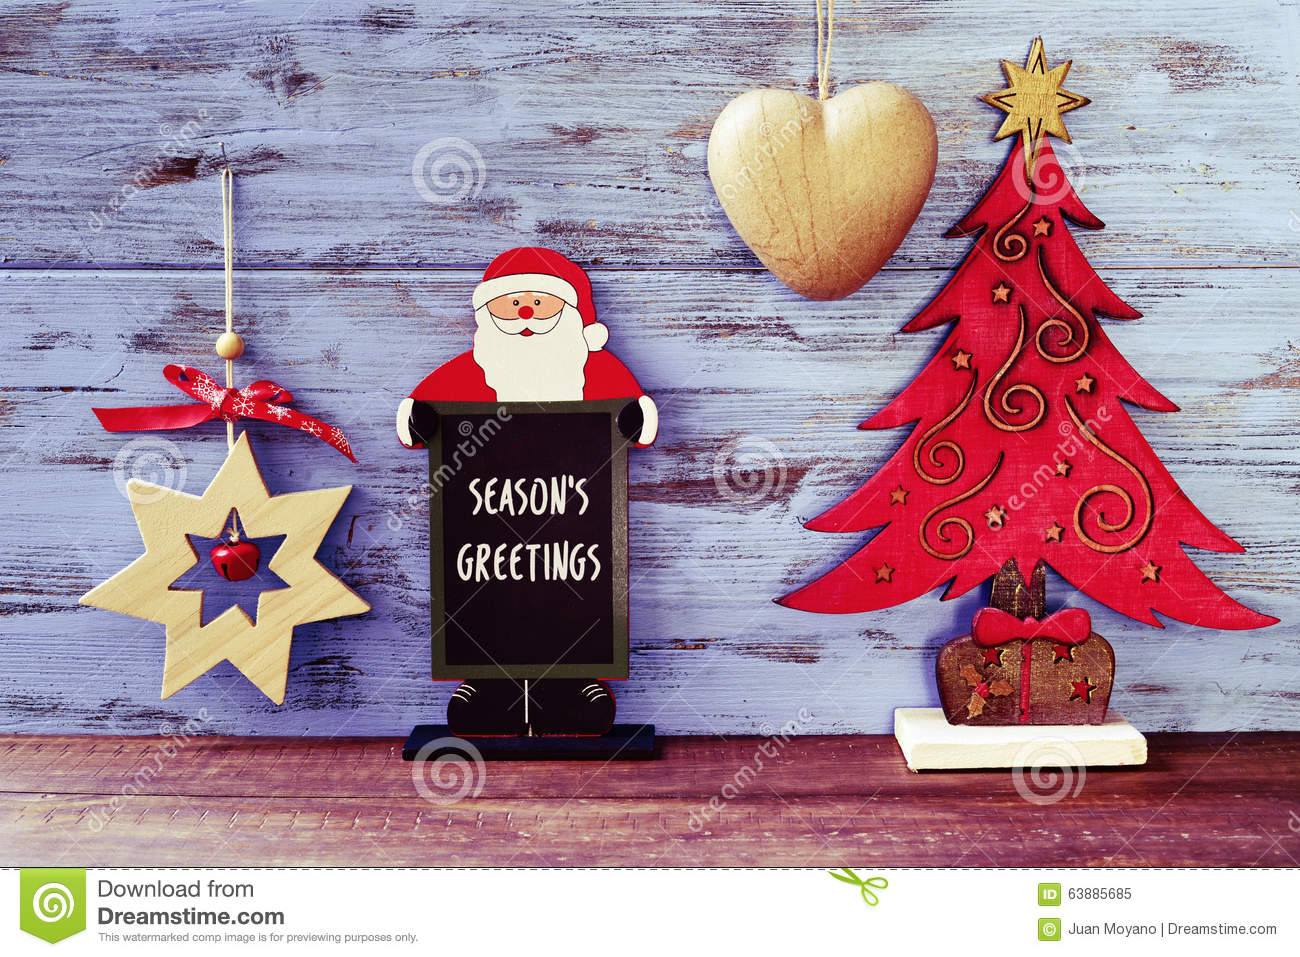 Rustic christmas ornaments and text seasons greetings stock image download rustic christmas ornaments and text seasons greetings stock image image of greeting nostalgia m4hsunfo